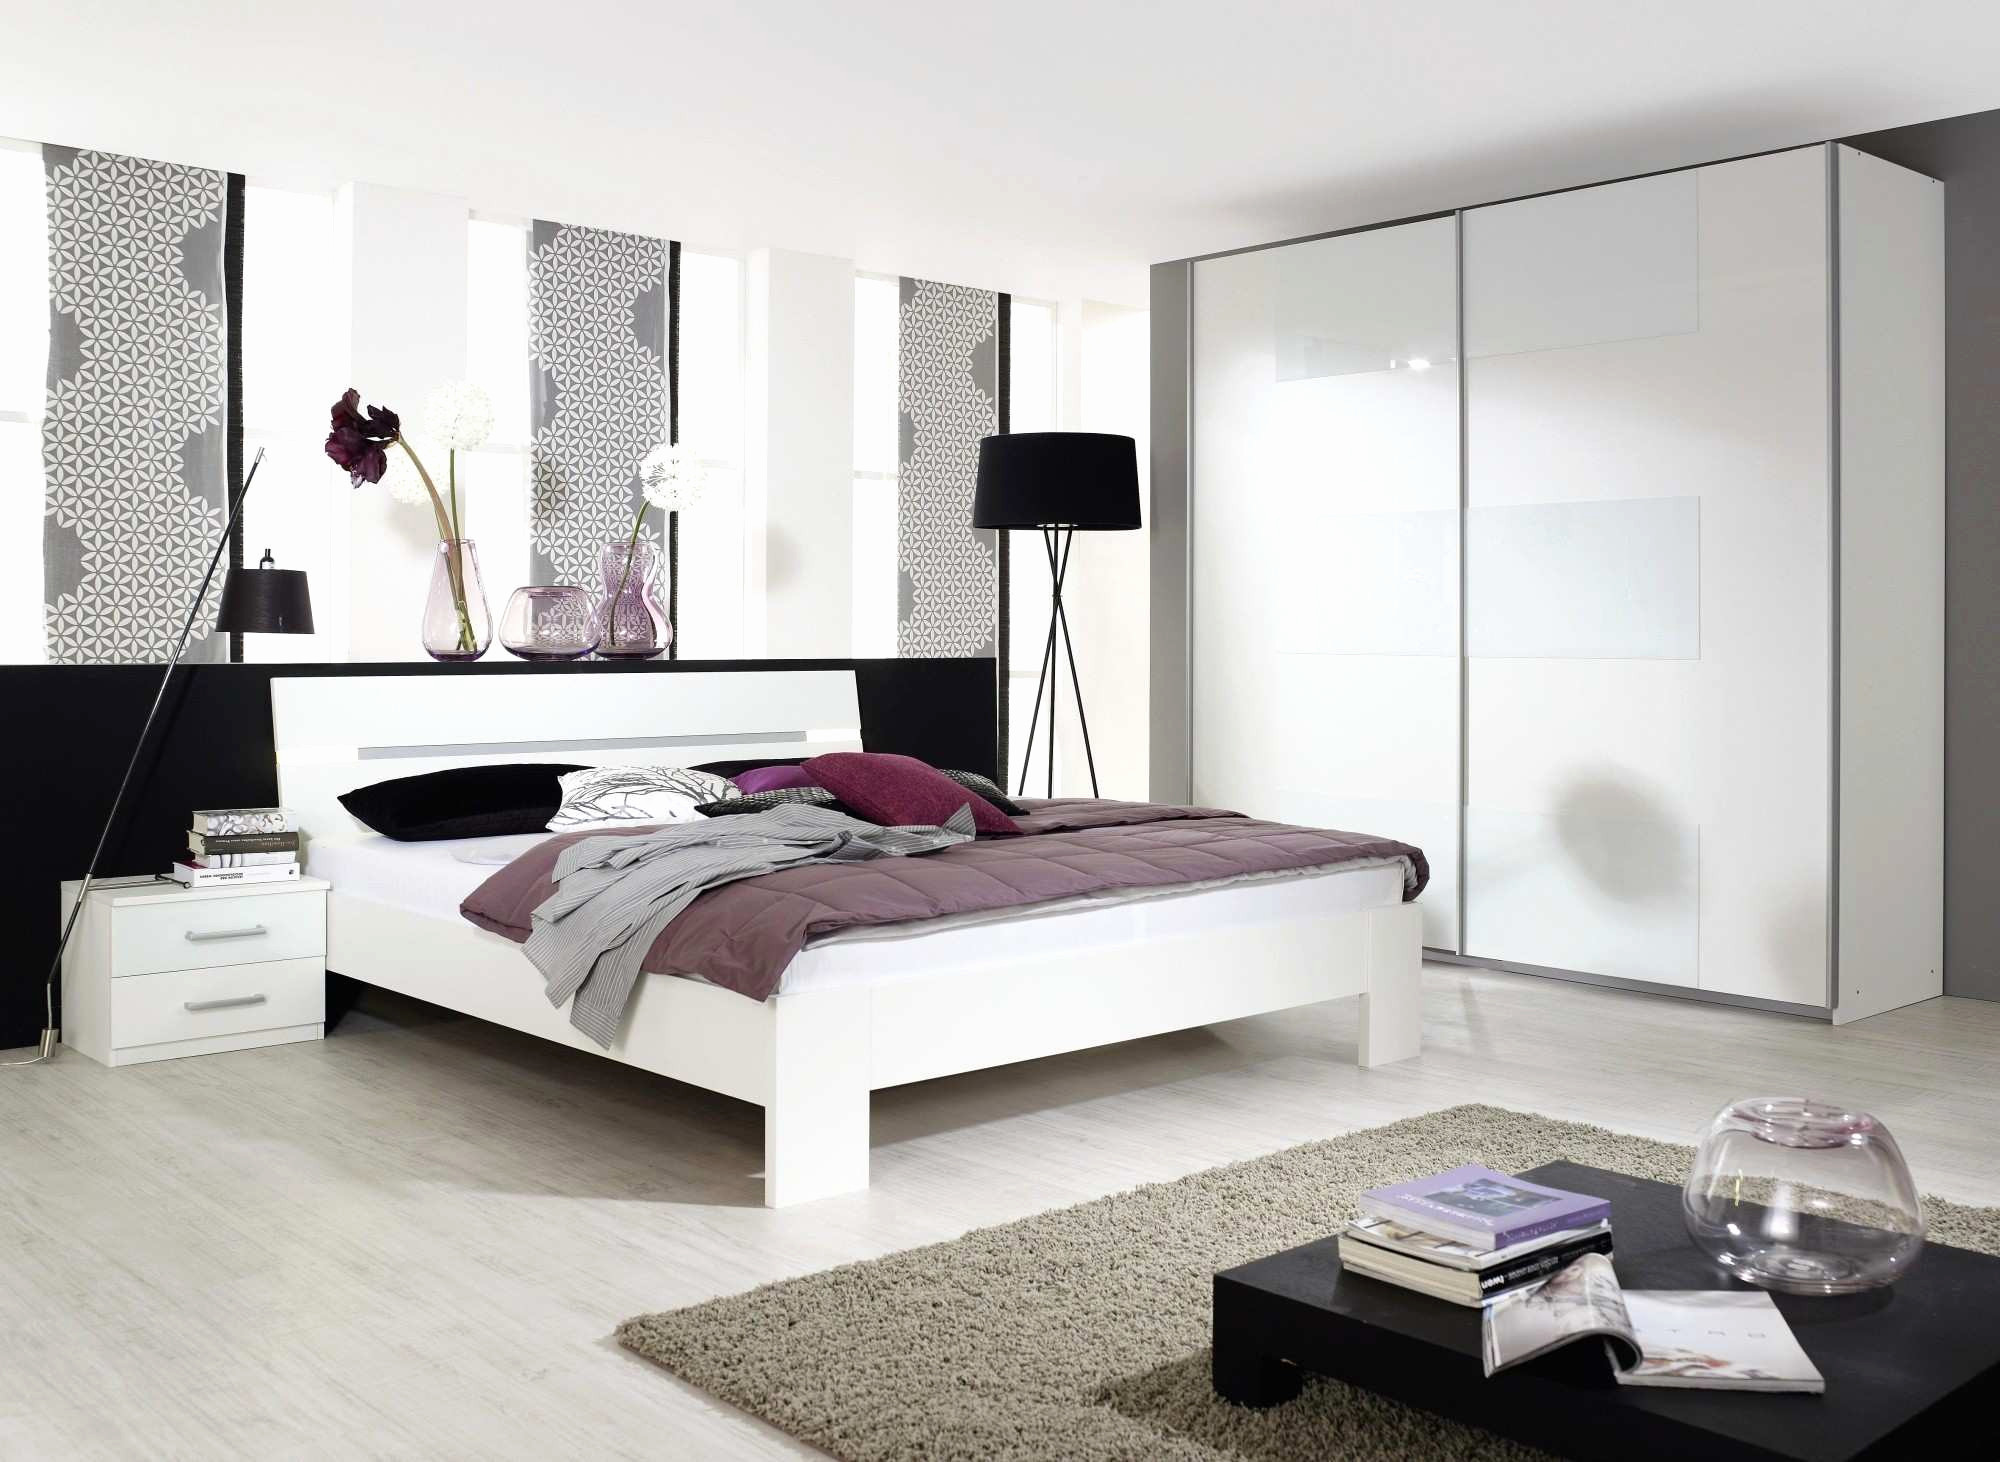 cdiscount chambre a coucher 42 schc2a8me cdiscount chambre a coucher of cdiscount chambre a coucher 1